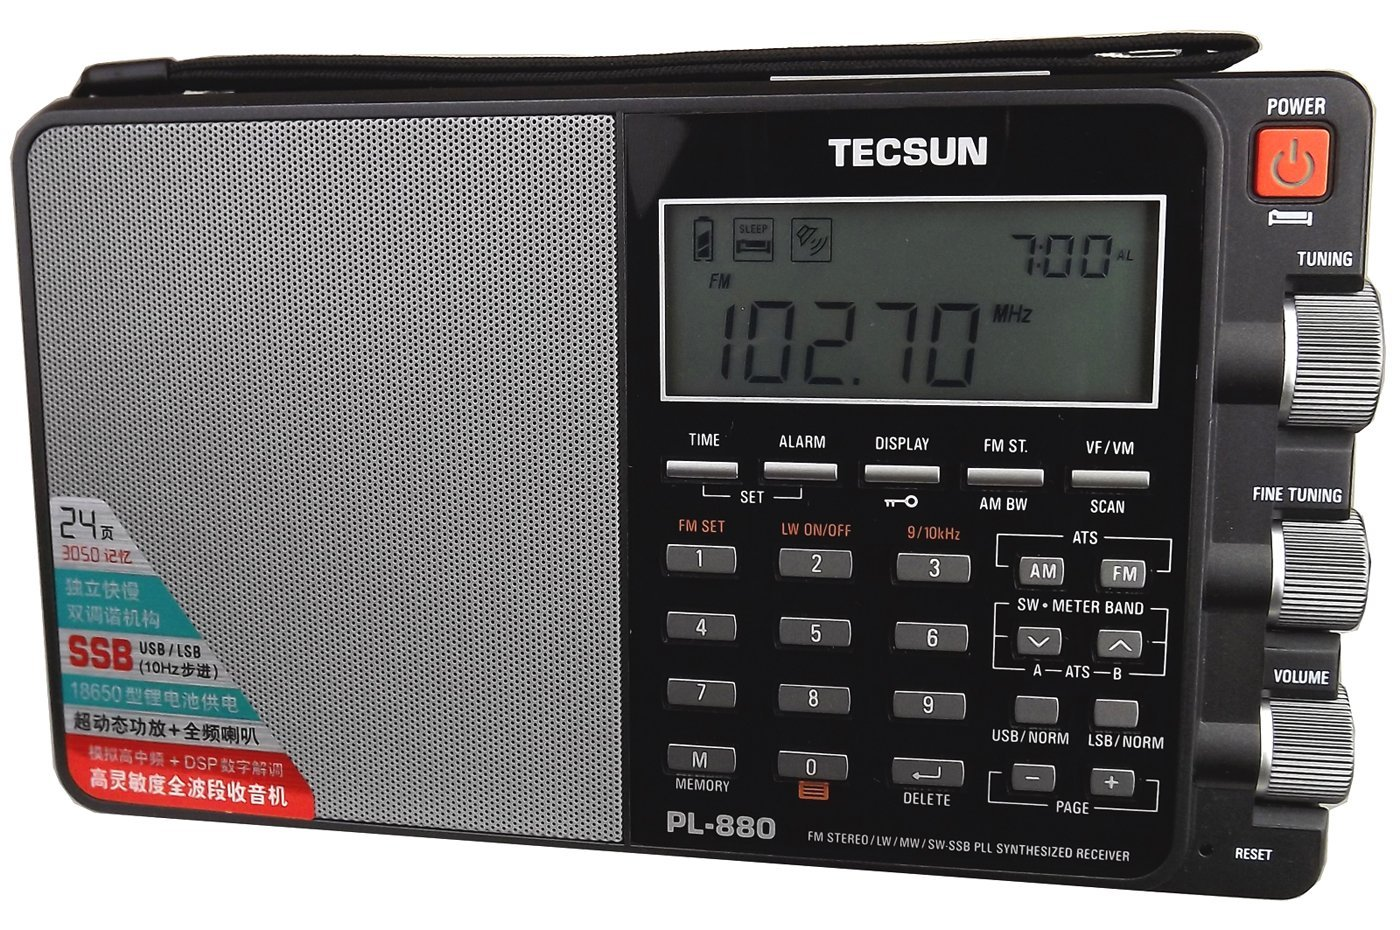 Tecsun Pl600 World Band Radio together with Tecsun S2000 AM FM Shortwave Longwave And VHF 122486287735 as well 142169394577 further Grundigeton Satellite 750 Tecsun S 2000 furthermore Tecsun. on tecsun shortwave radios